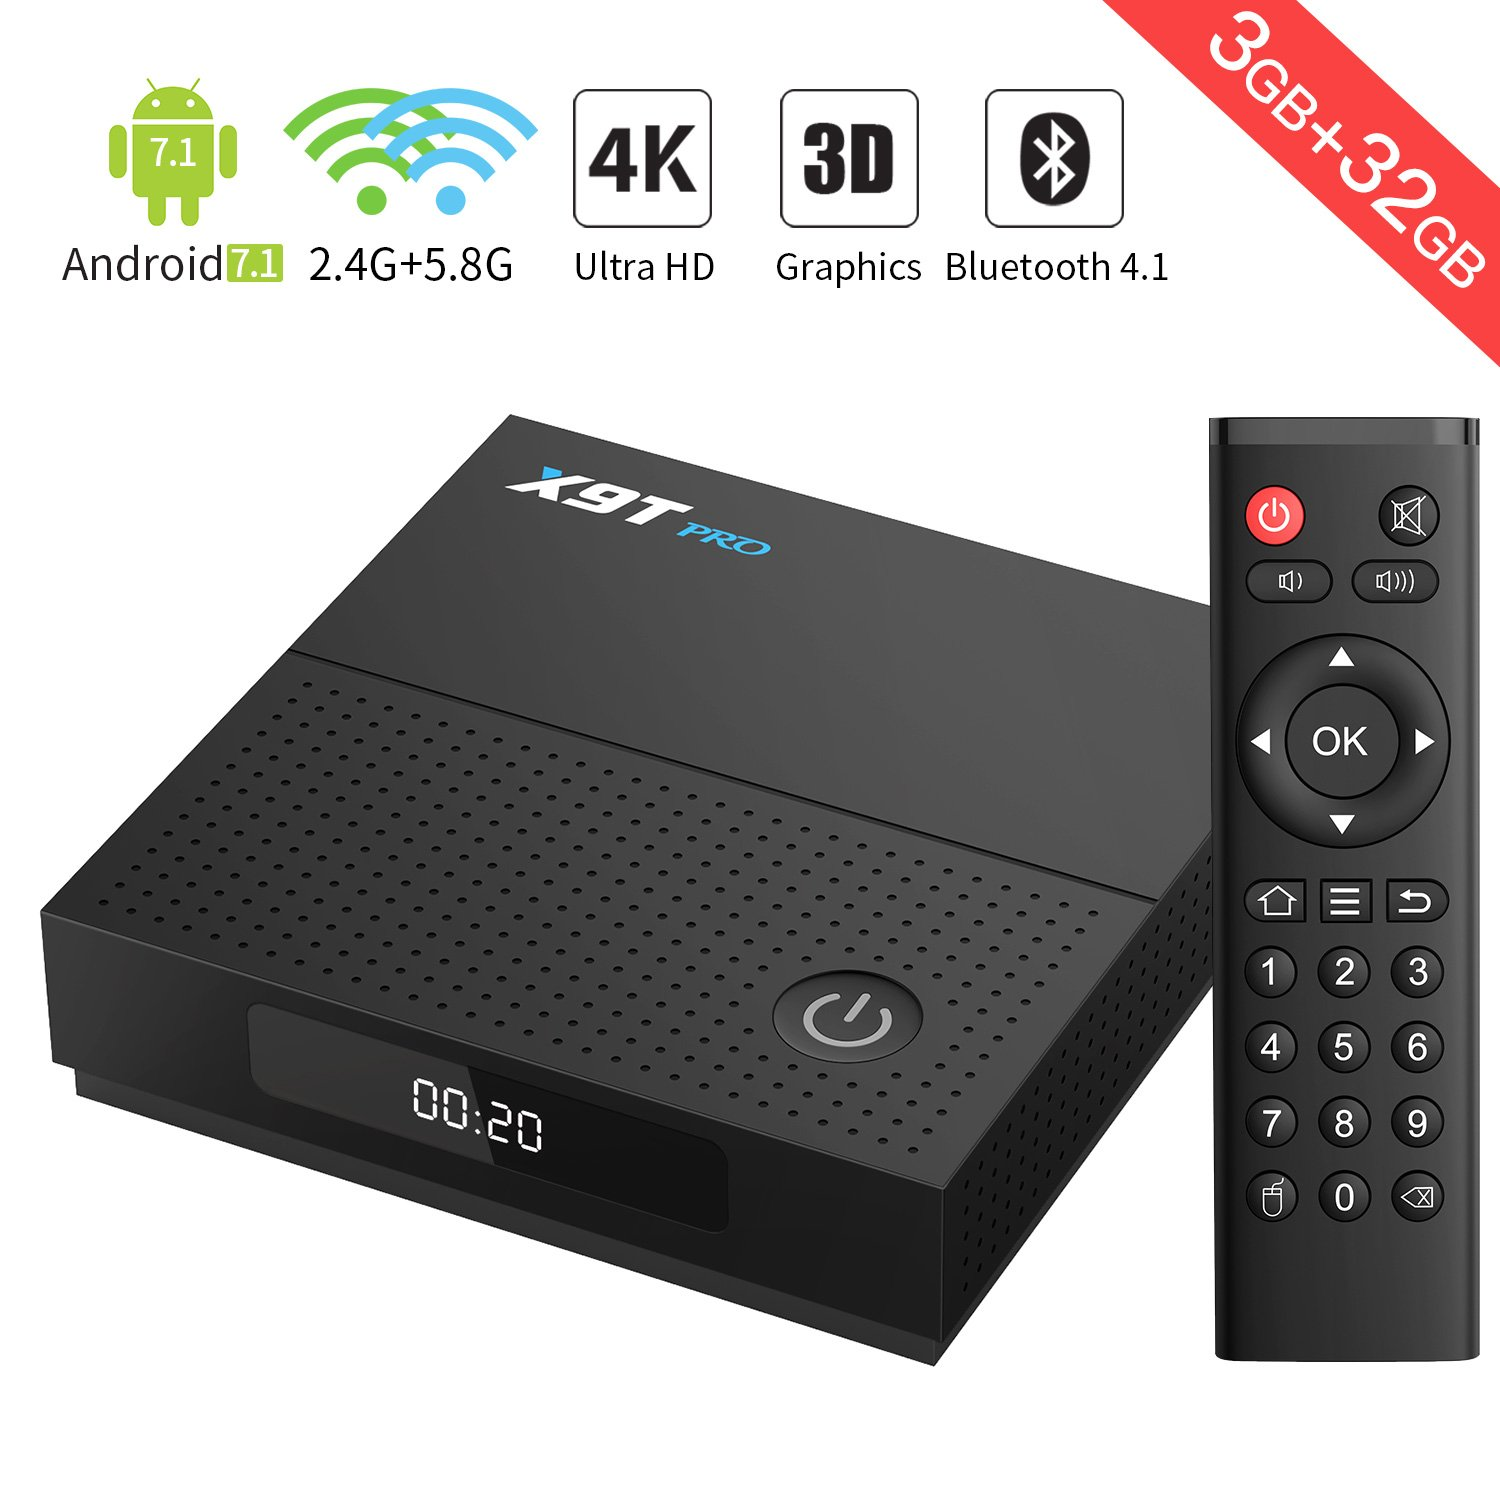 Bqeel X9T Pro Android TV Box Android 7.1 con Amlogic S912 Ocho núcleos 3GB / 32G eMMC / 1000M LAN / Dual-Band WiFi / Bluetooth 4.1 H.265 4K Smart TV Box: Amazon.es: Electrónica